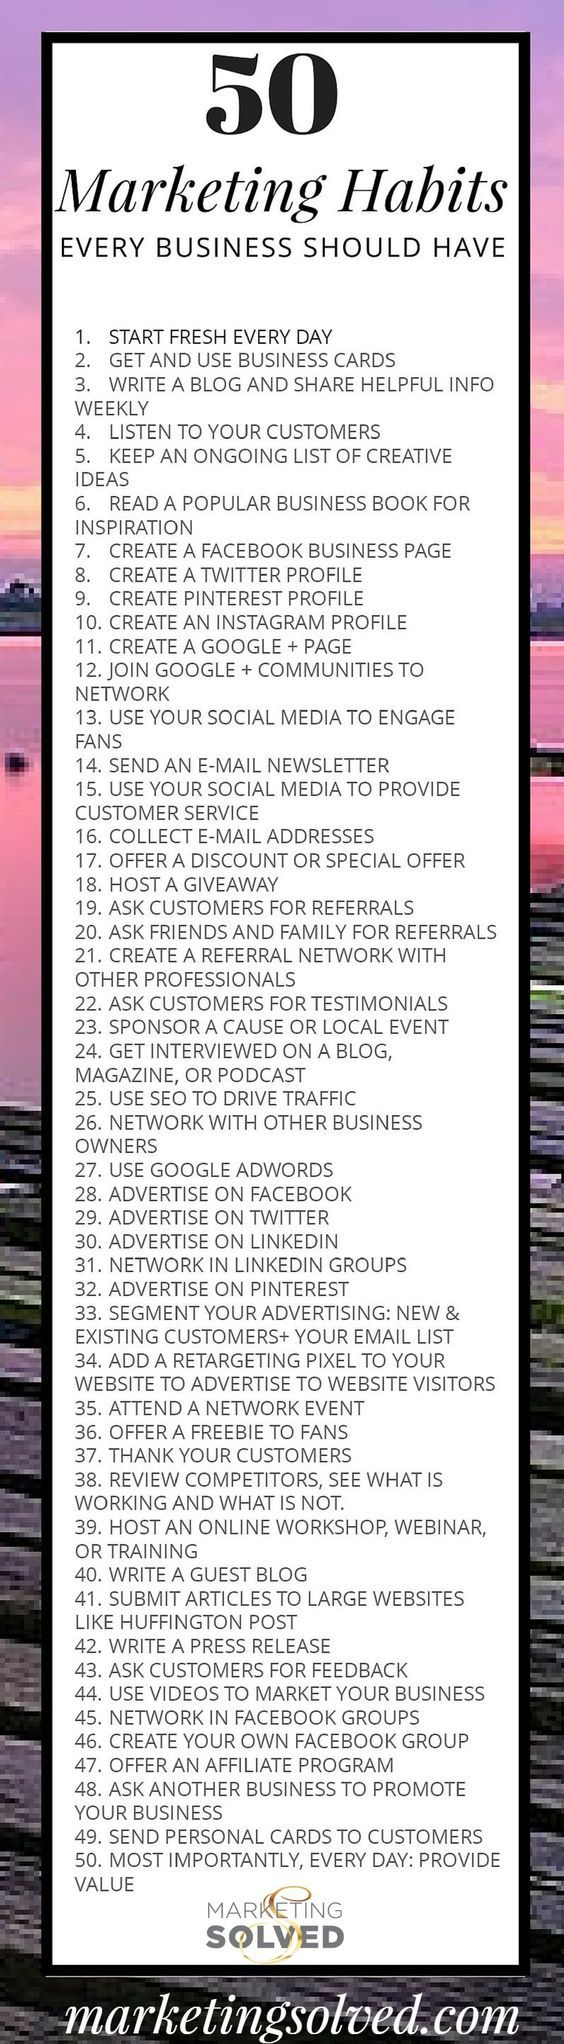 50 Smart Daily Marketing Habits Every Business Should Have. http://zanraconsulting.com/: